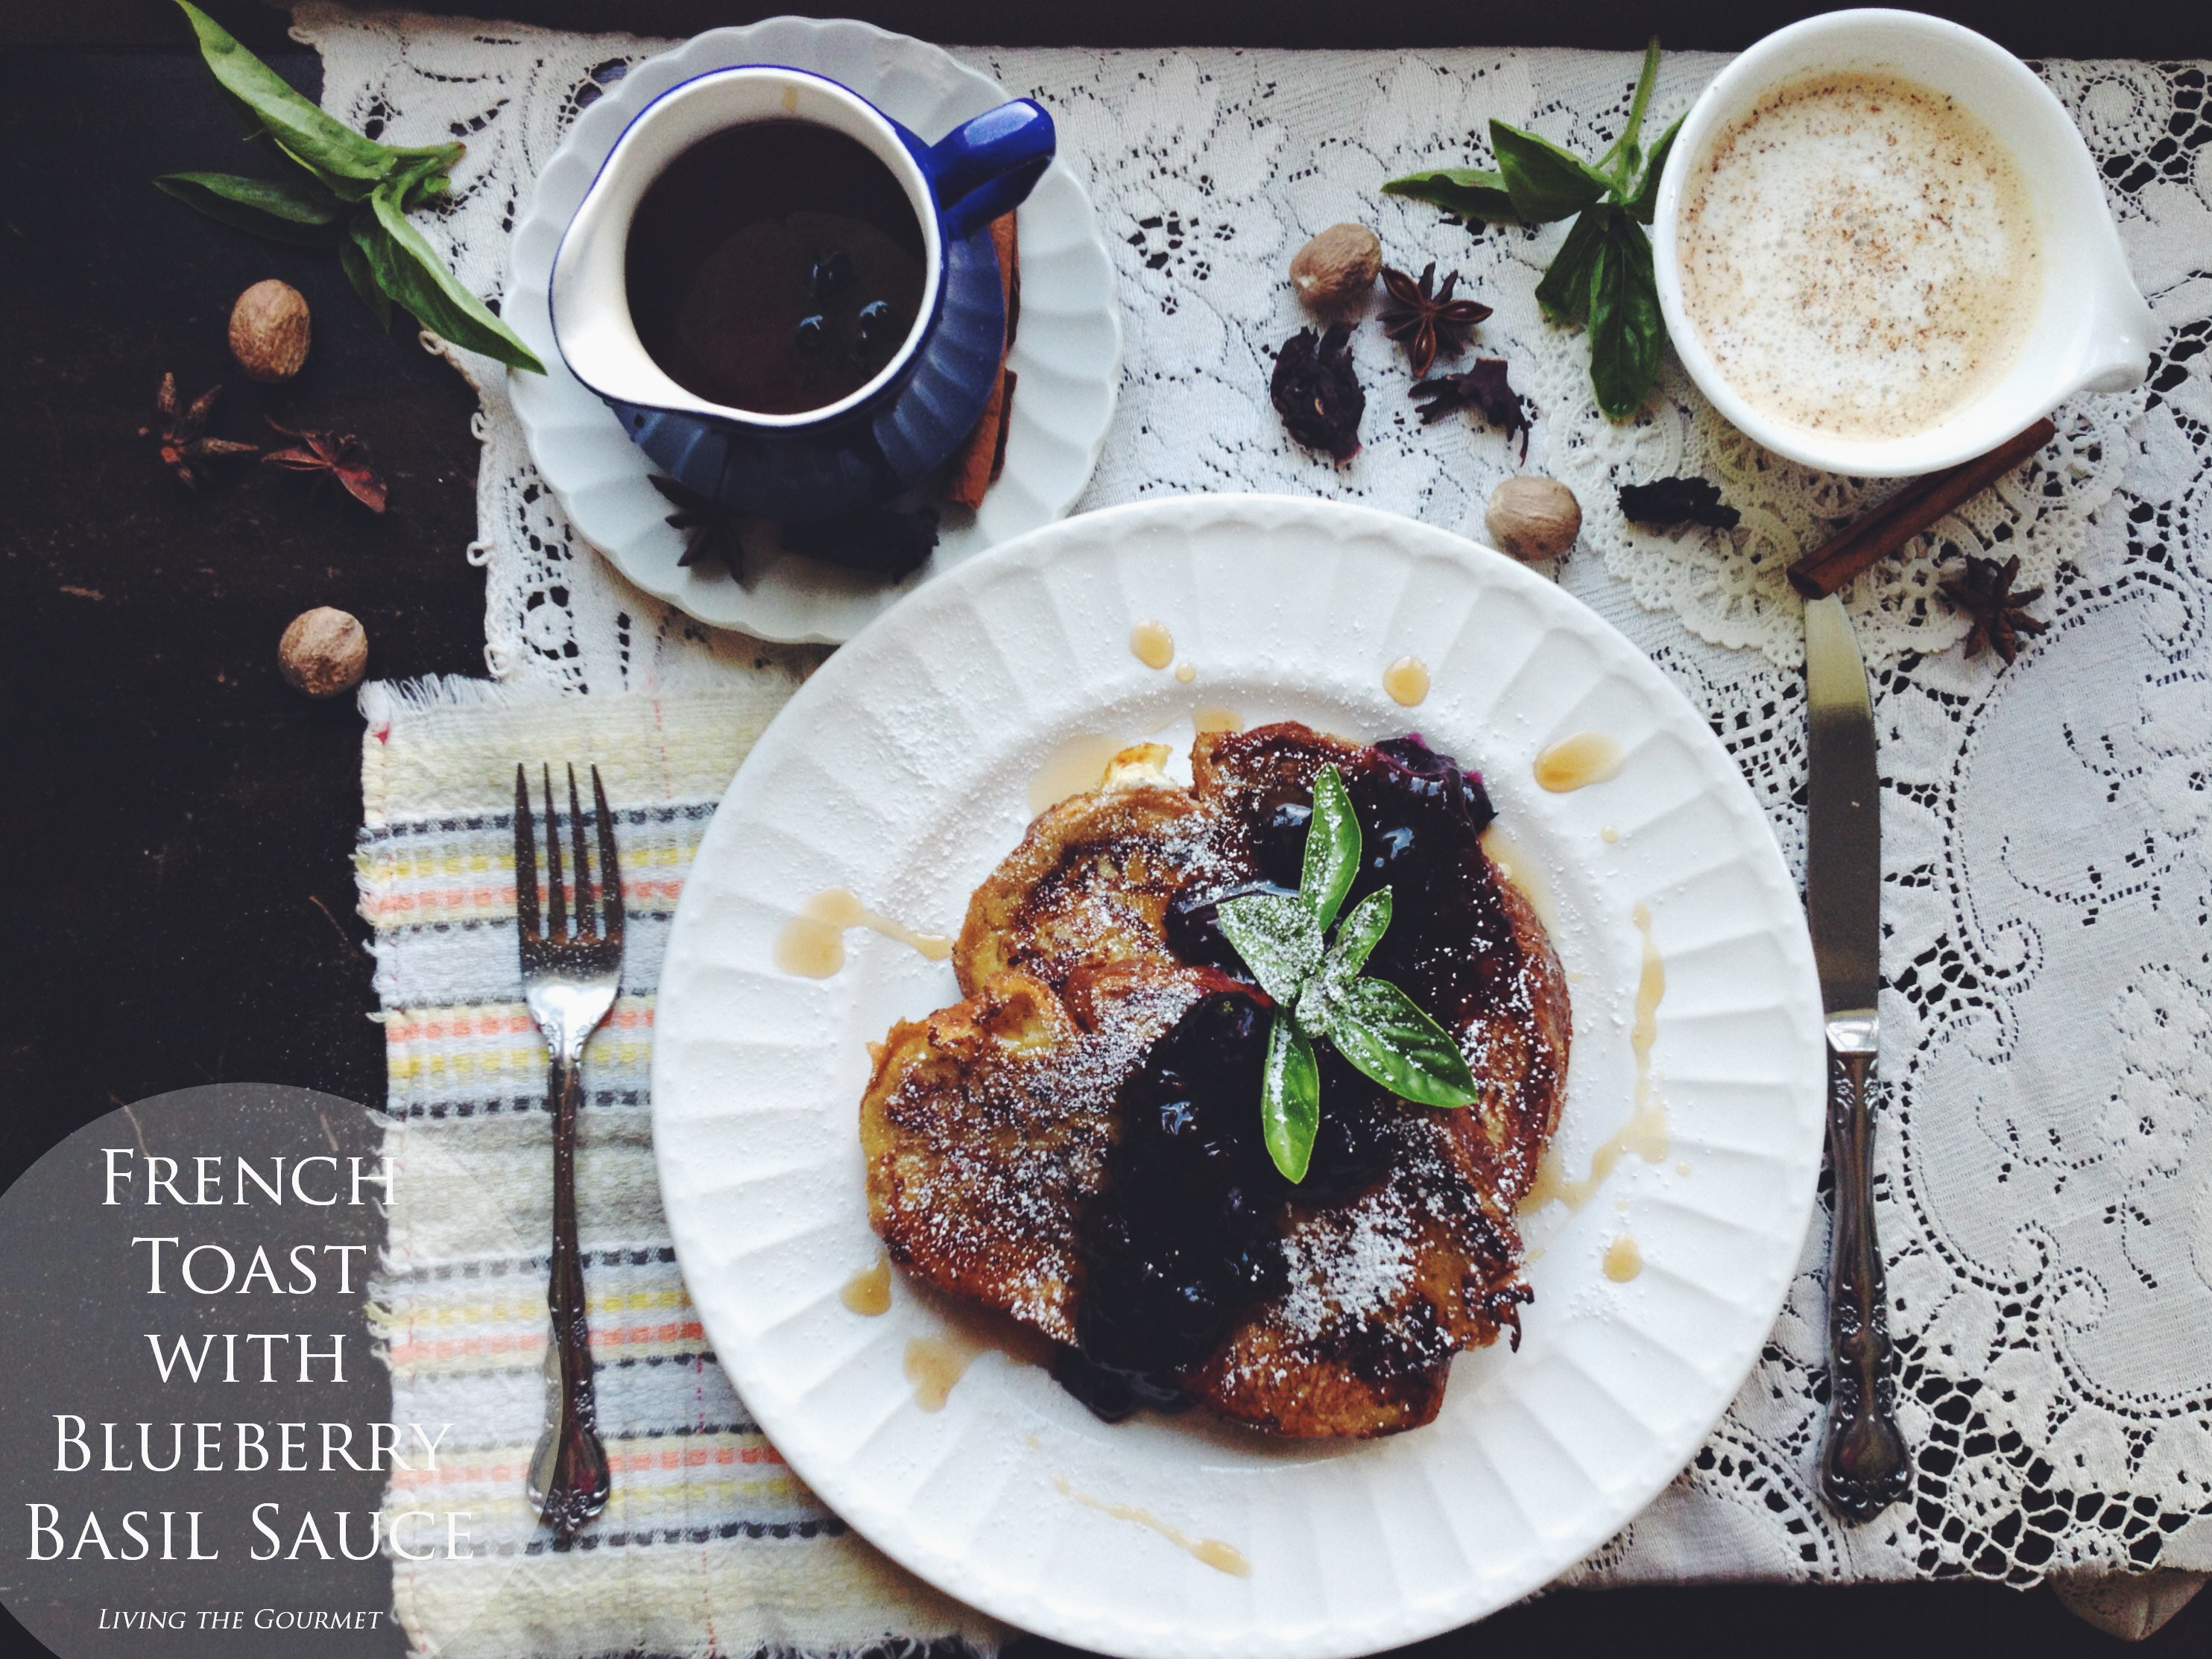 Living the Gourmet: French Toast with Blueberry Basil Sauce